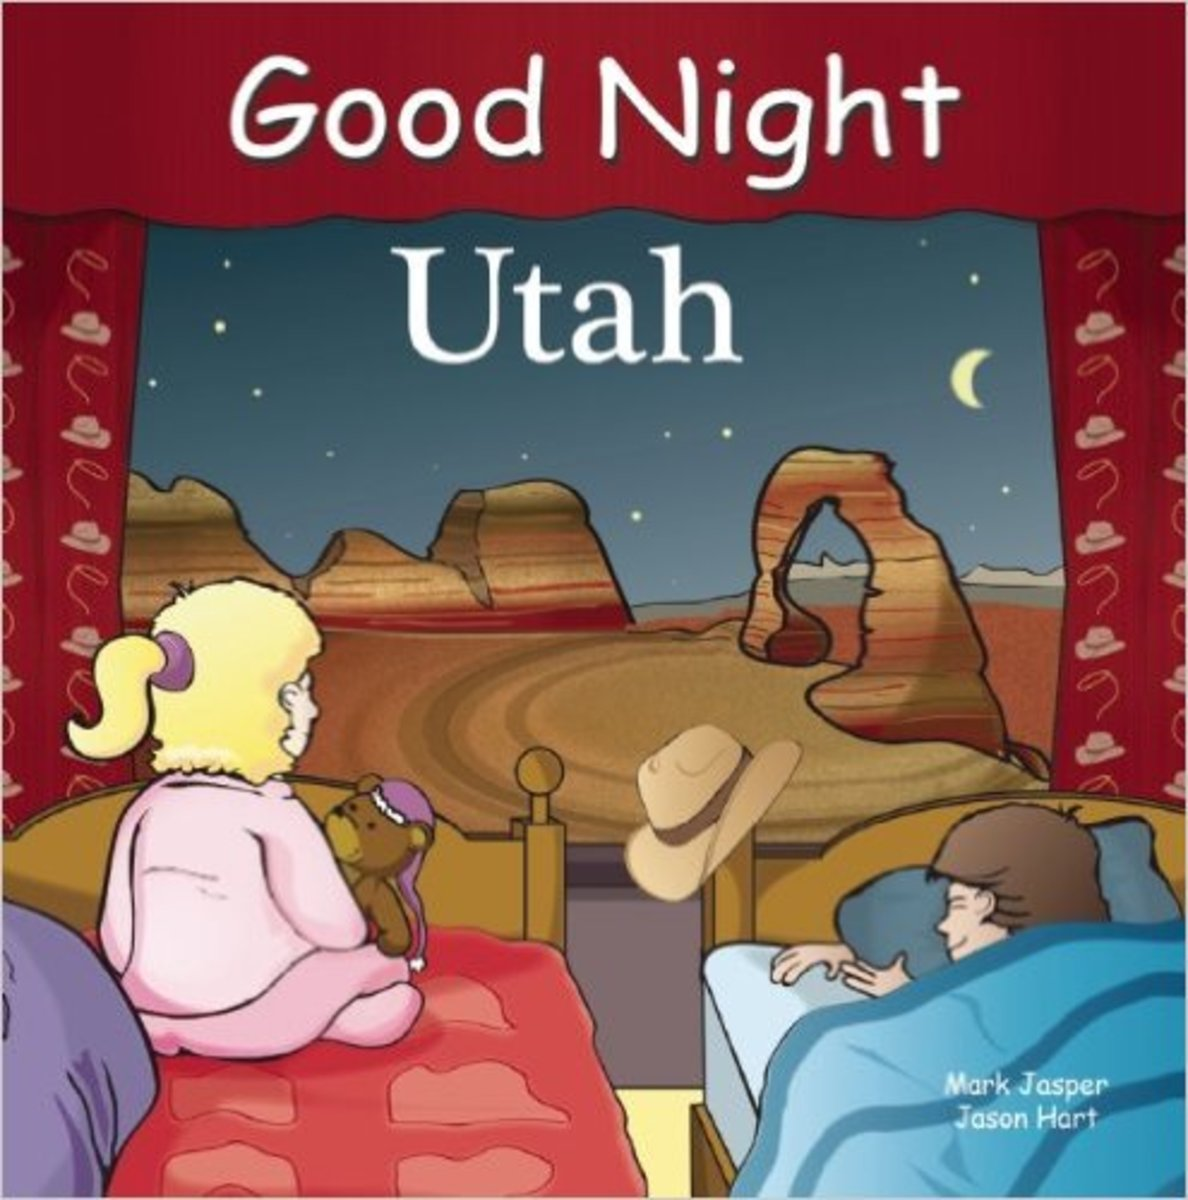 Good Night Utah (Good Night Our World) Board book by Mark Jasper - Image is from amazon.com